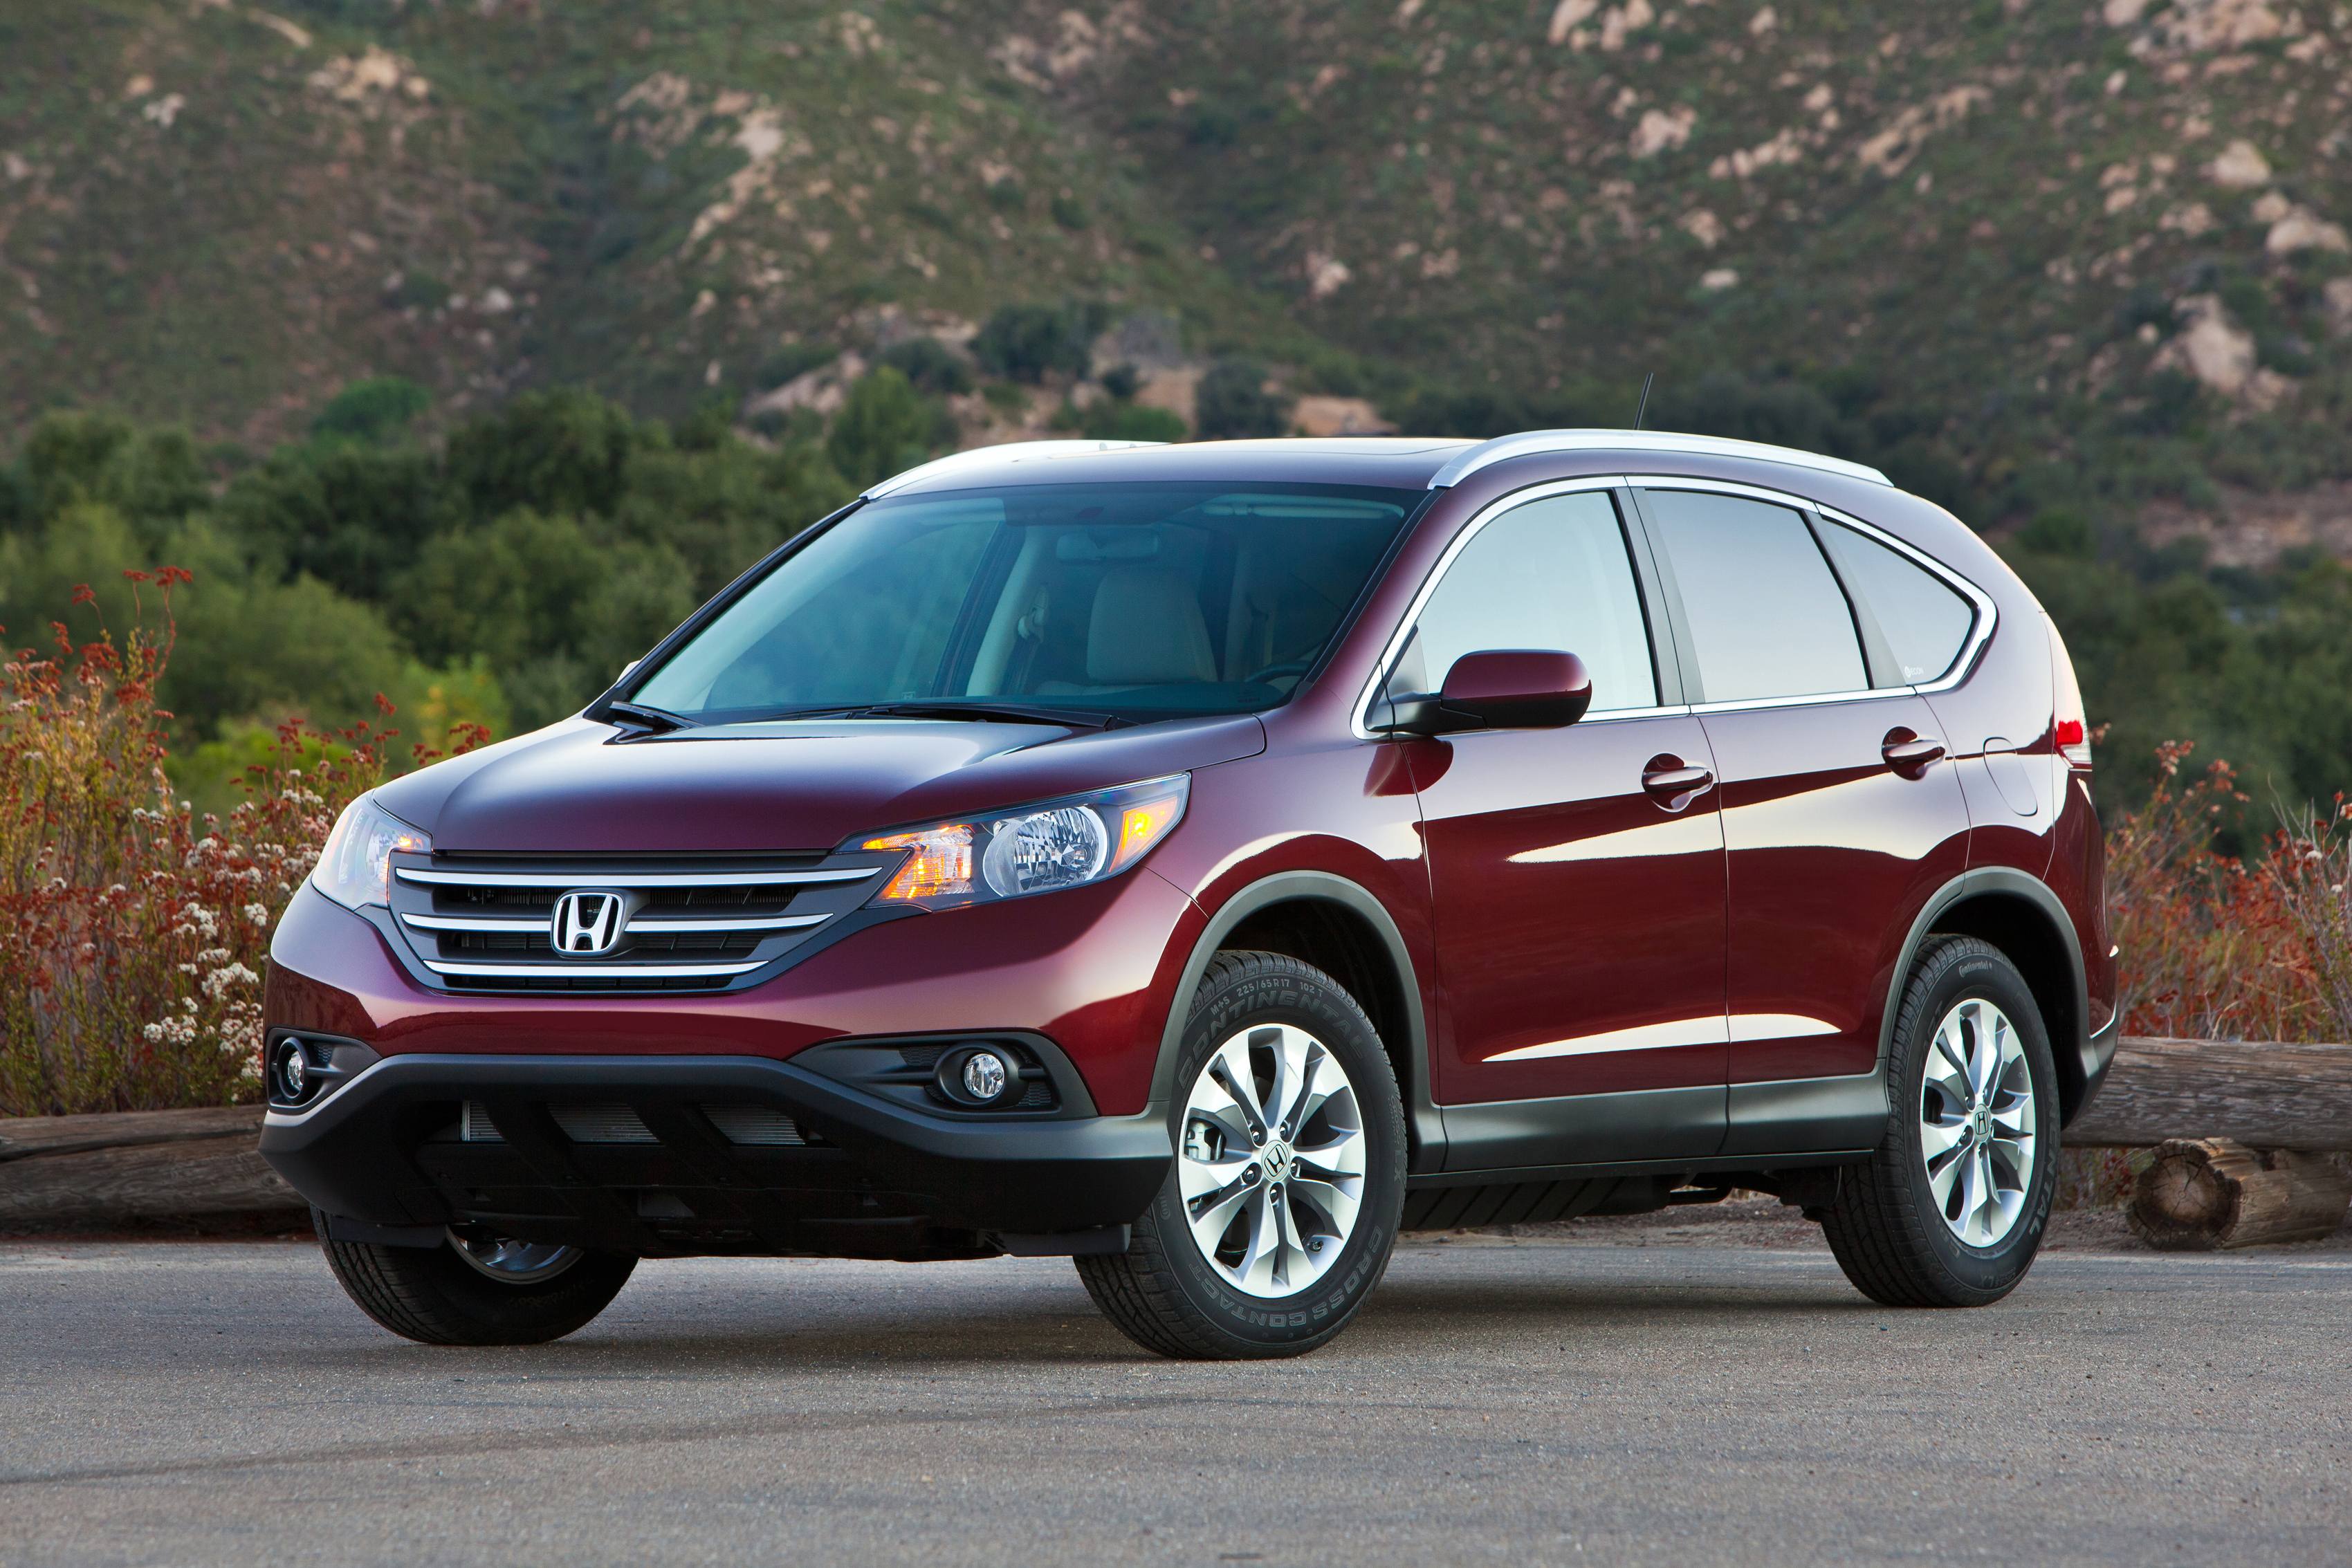 crosstour of hatchback used acura fit sport inspirational groovecar honda research